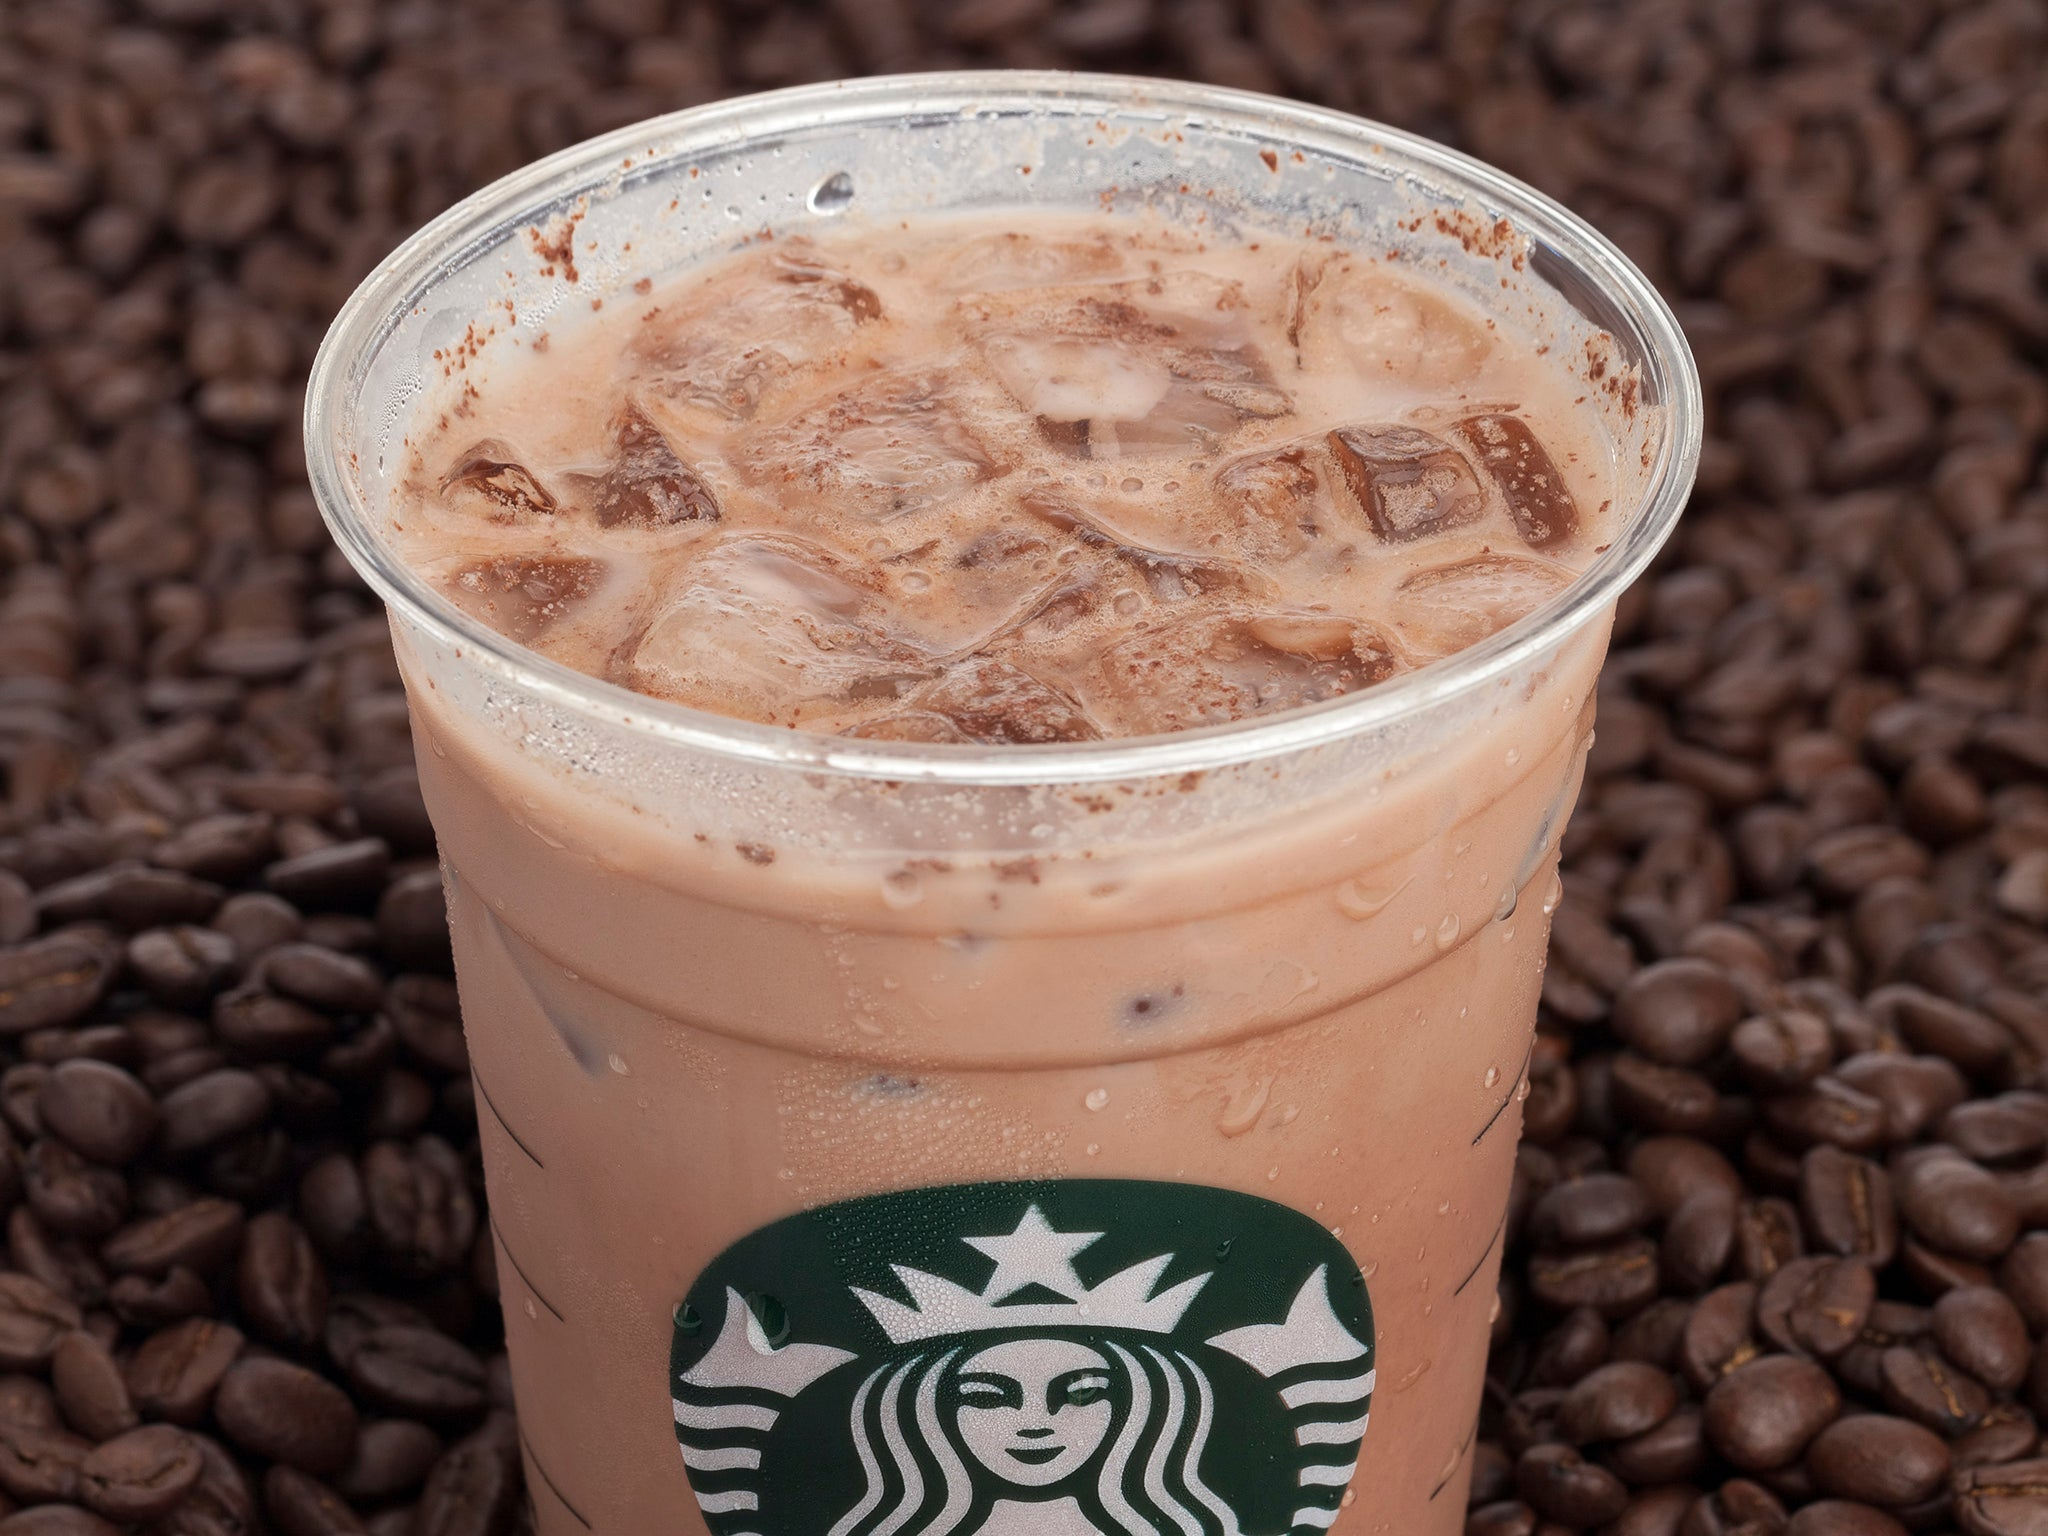 Starbucks Being Sued For 5 Million Over Its Iced Coffee foto